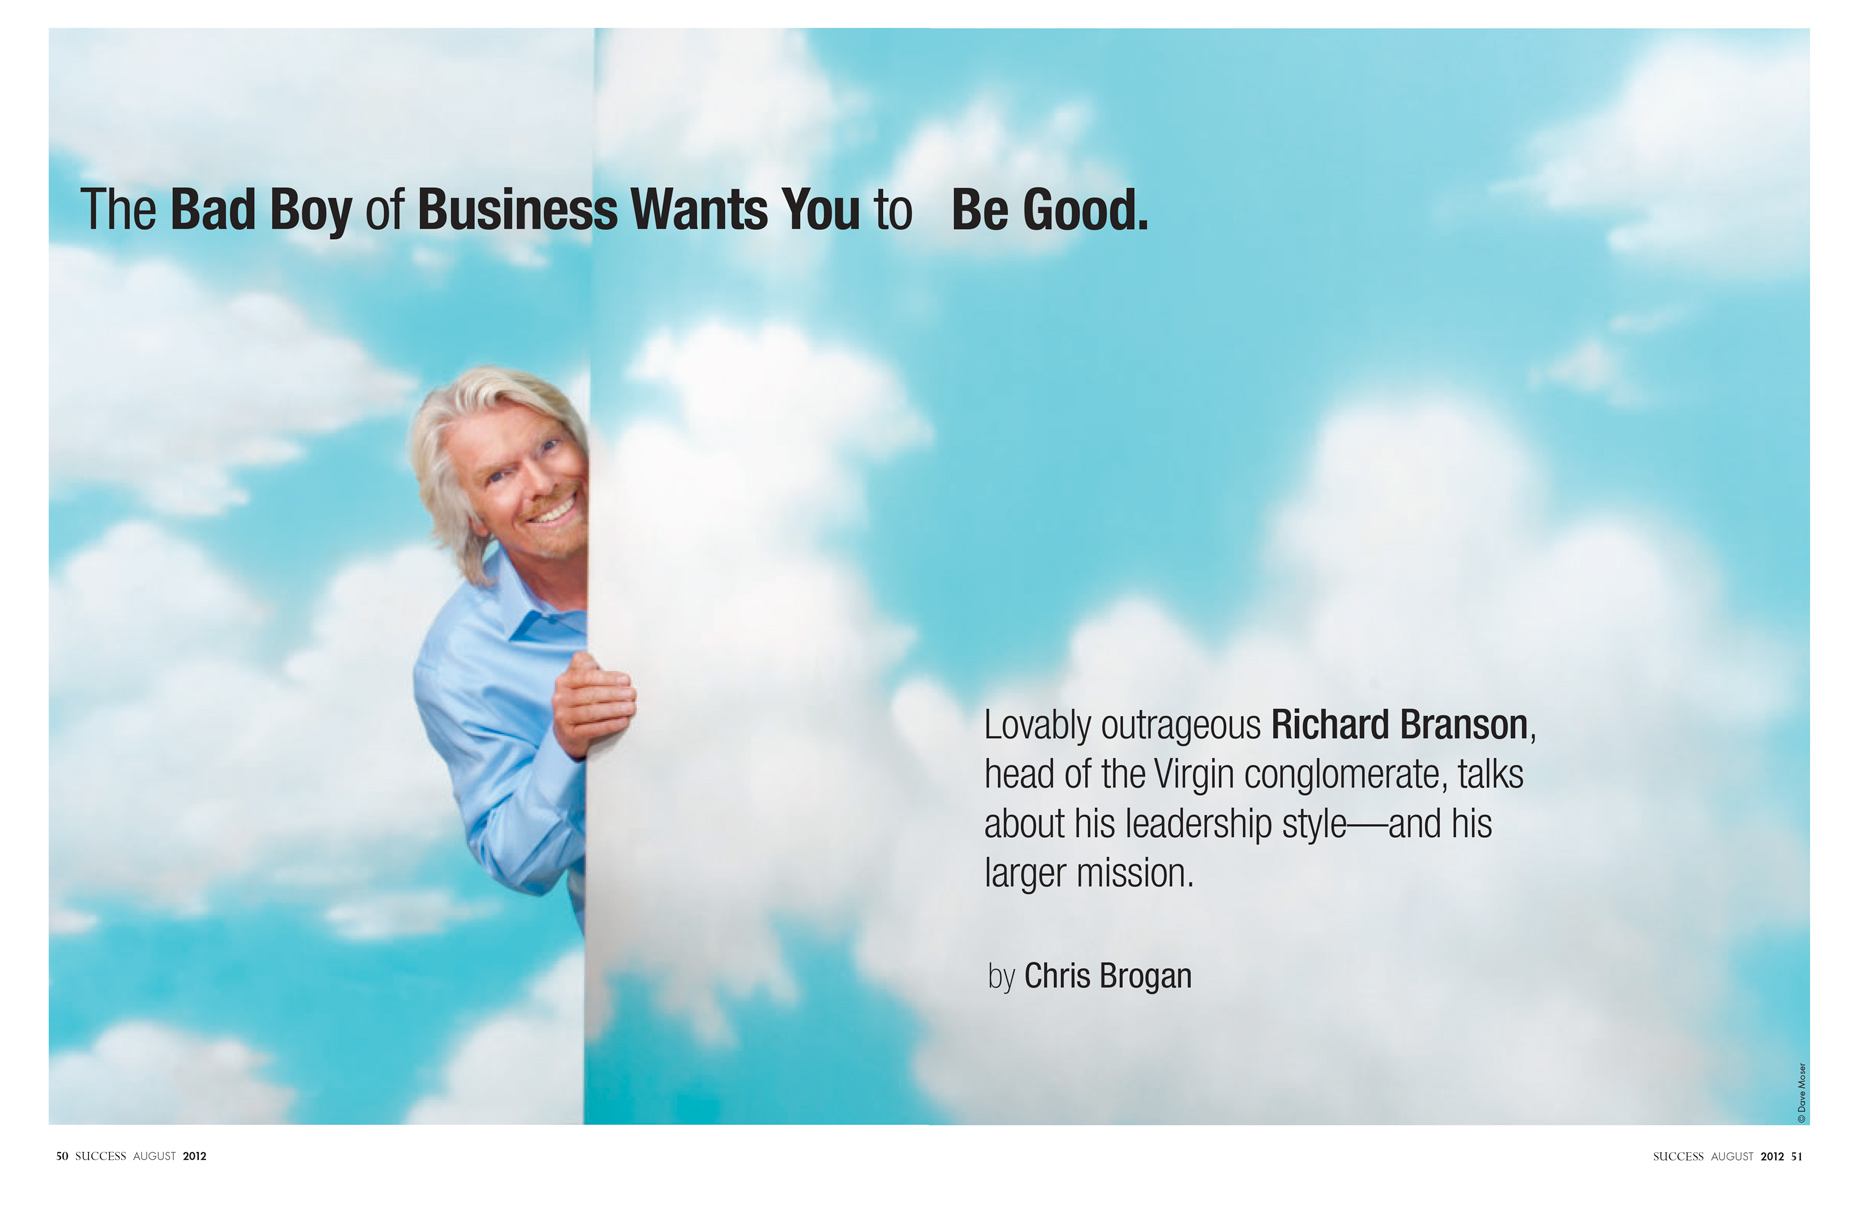 success-magazine-editorial-celebrity-branson-cloud-spread